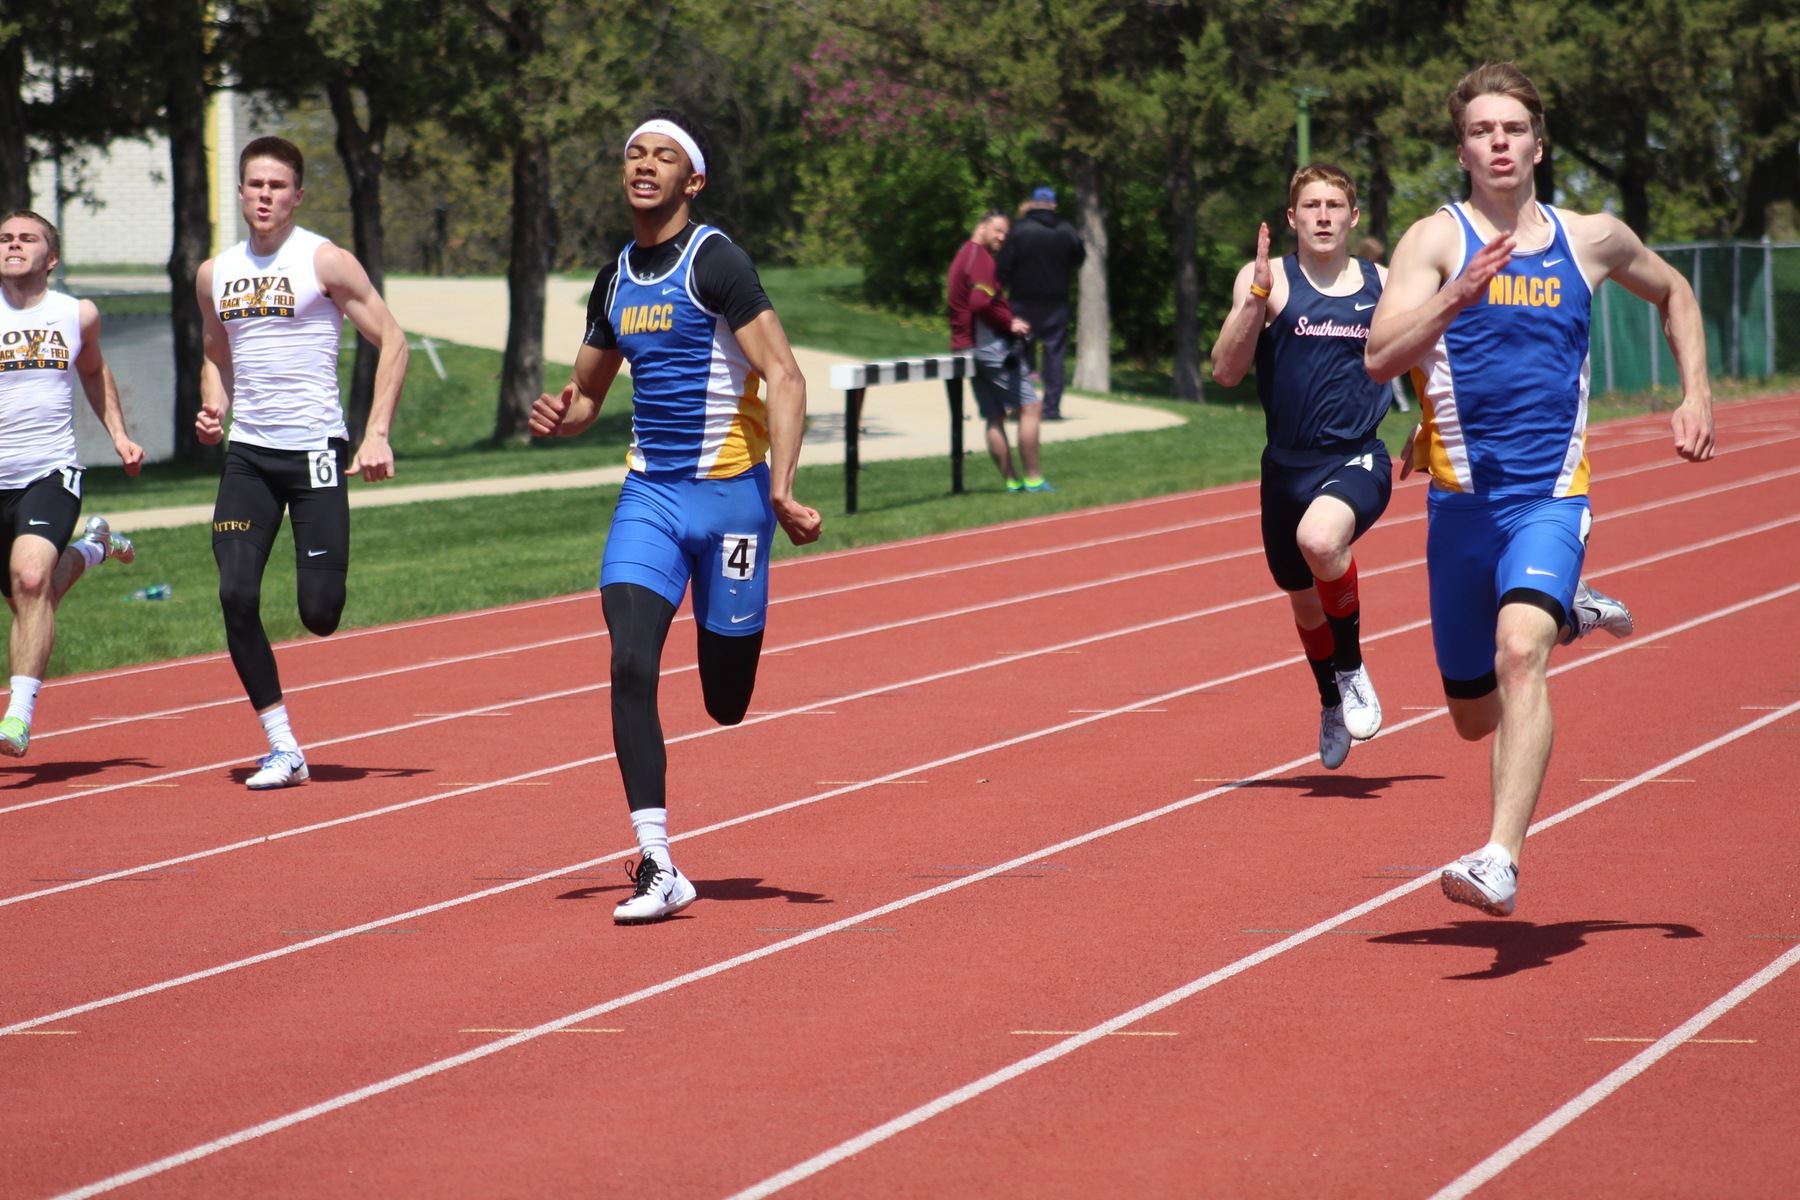 NIACC's Brody Goos (right) and Andre McKinney run the 200-meter dash at the Dick Young Invitational Saturday. Goos won in 22.75 and McKinney was third in 22.90.